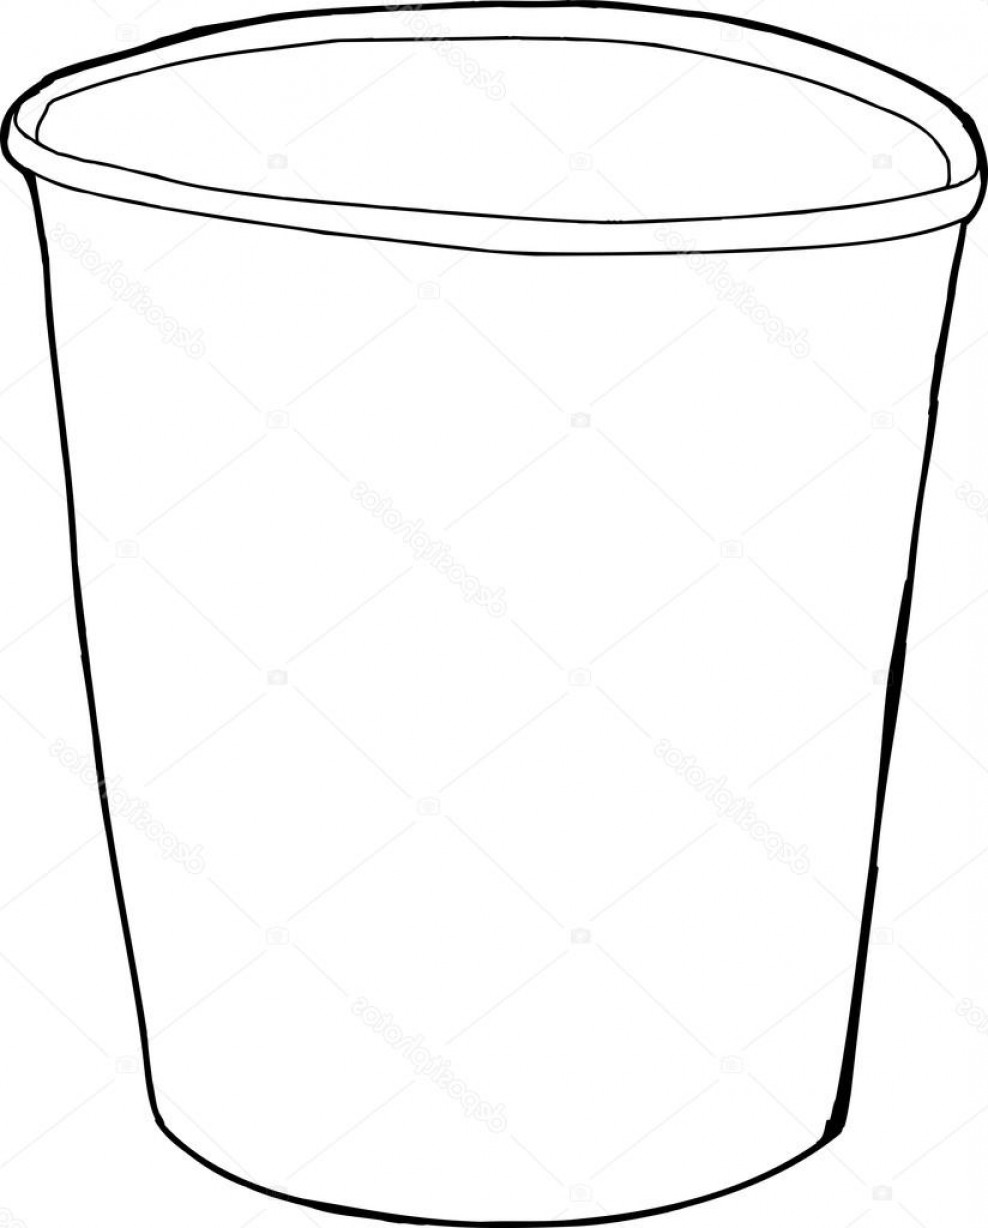 Empty cup clipart picture freeuse library Stock Illustration Cartoon Outline Of Styrofoam Cup | SOIDERGI picture freeuse library